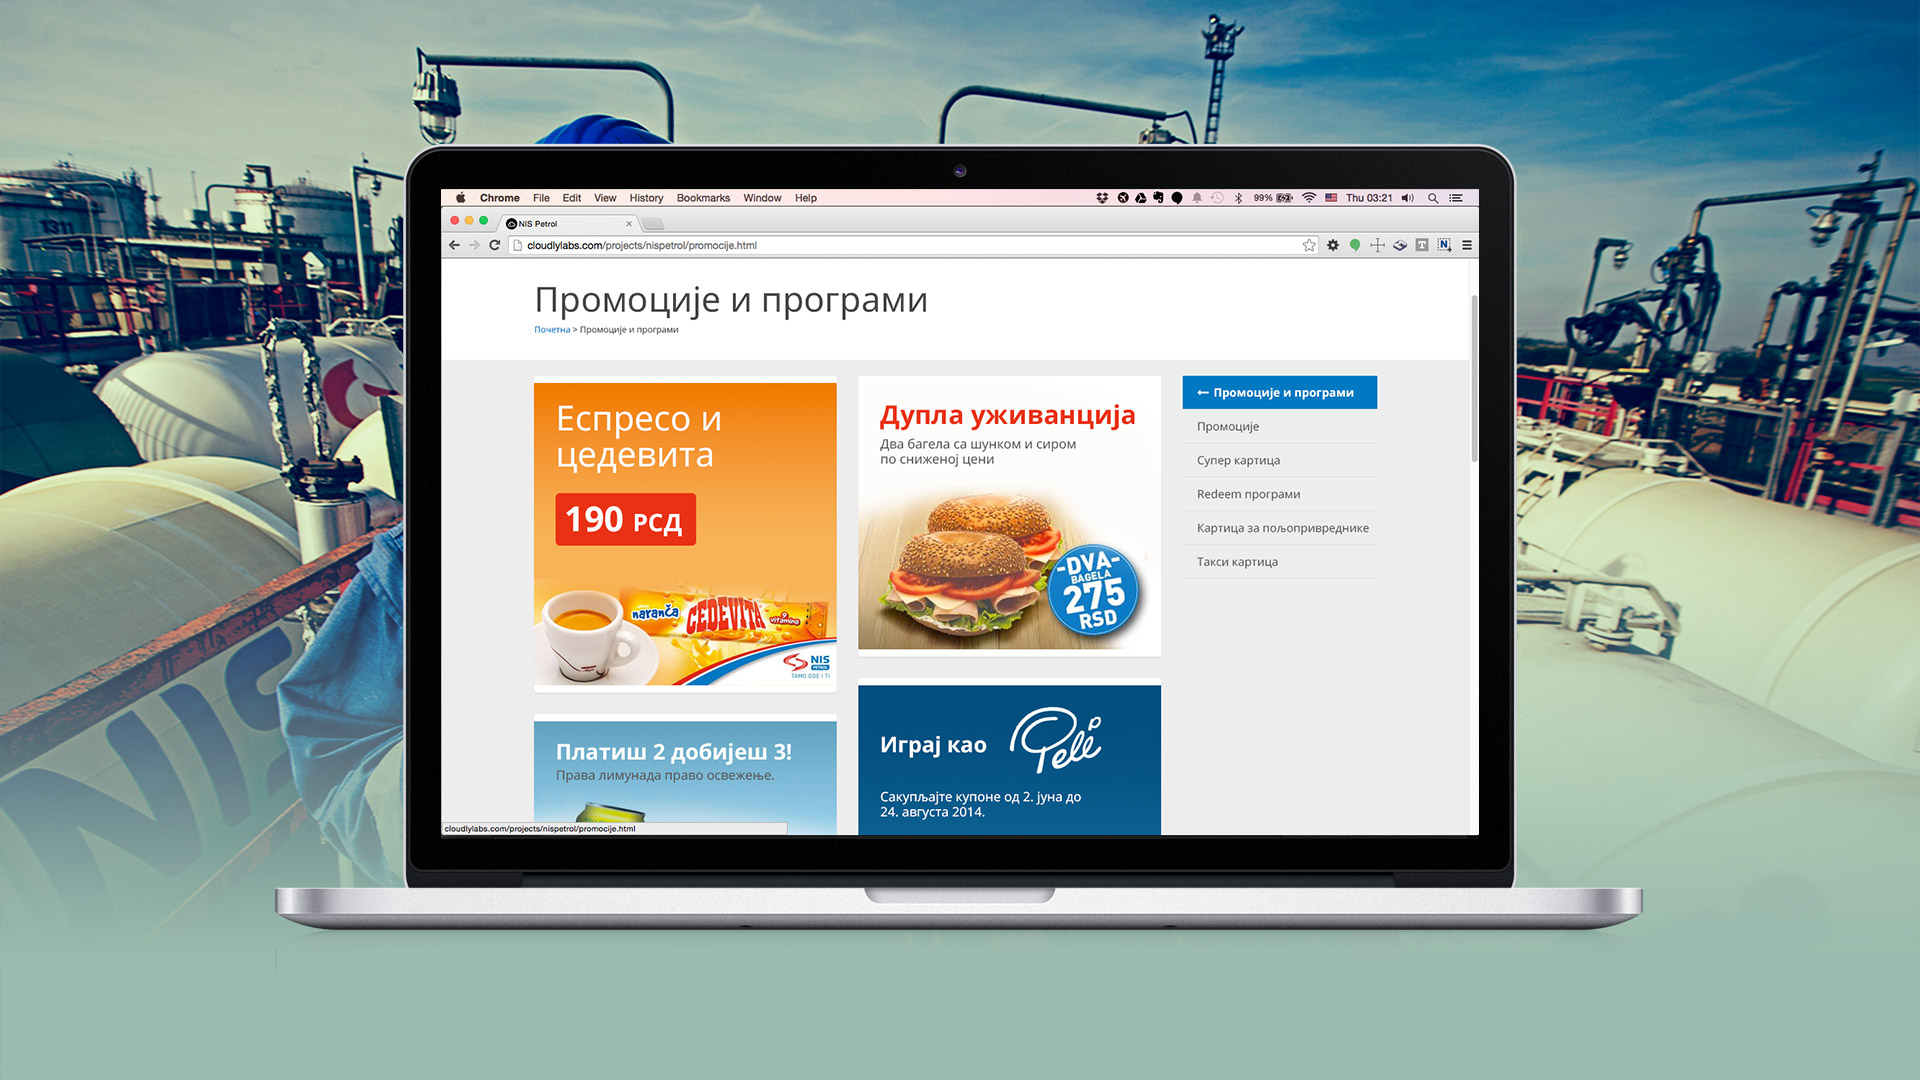 Cloudly Labs - NIS Gazprom Neft - NIS Petrol Promotions Page